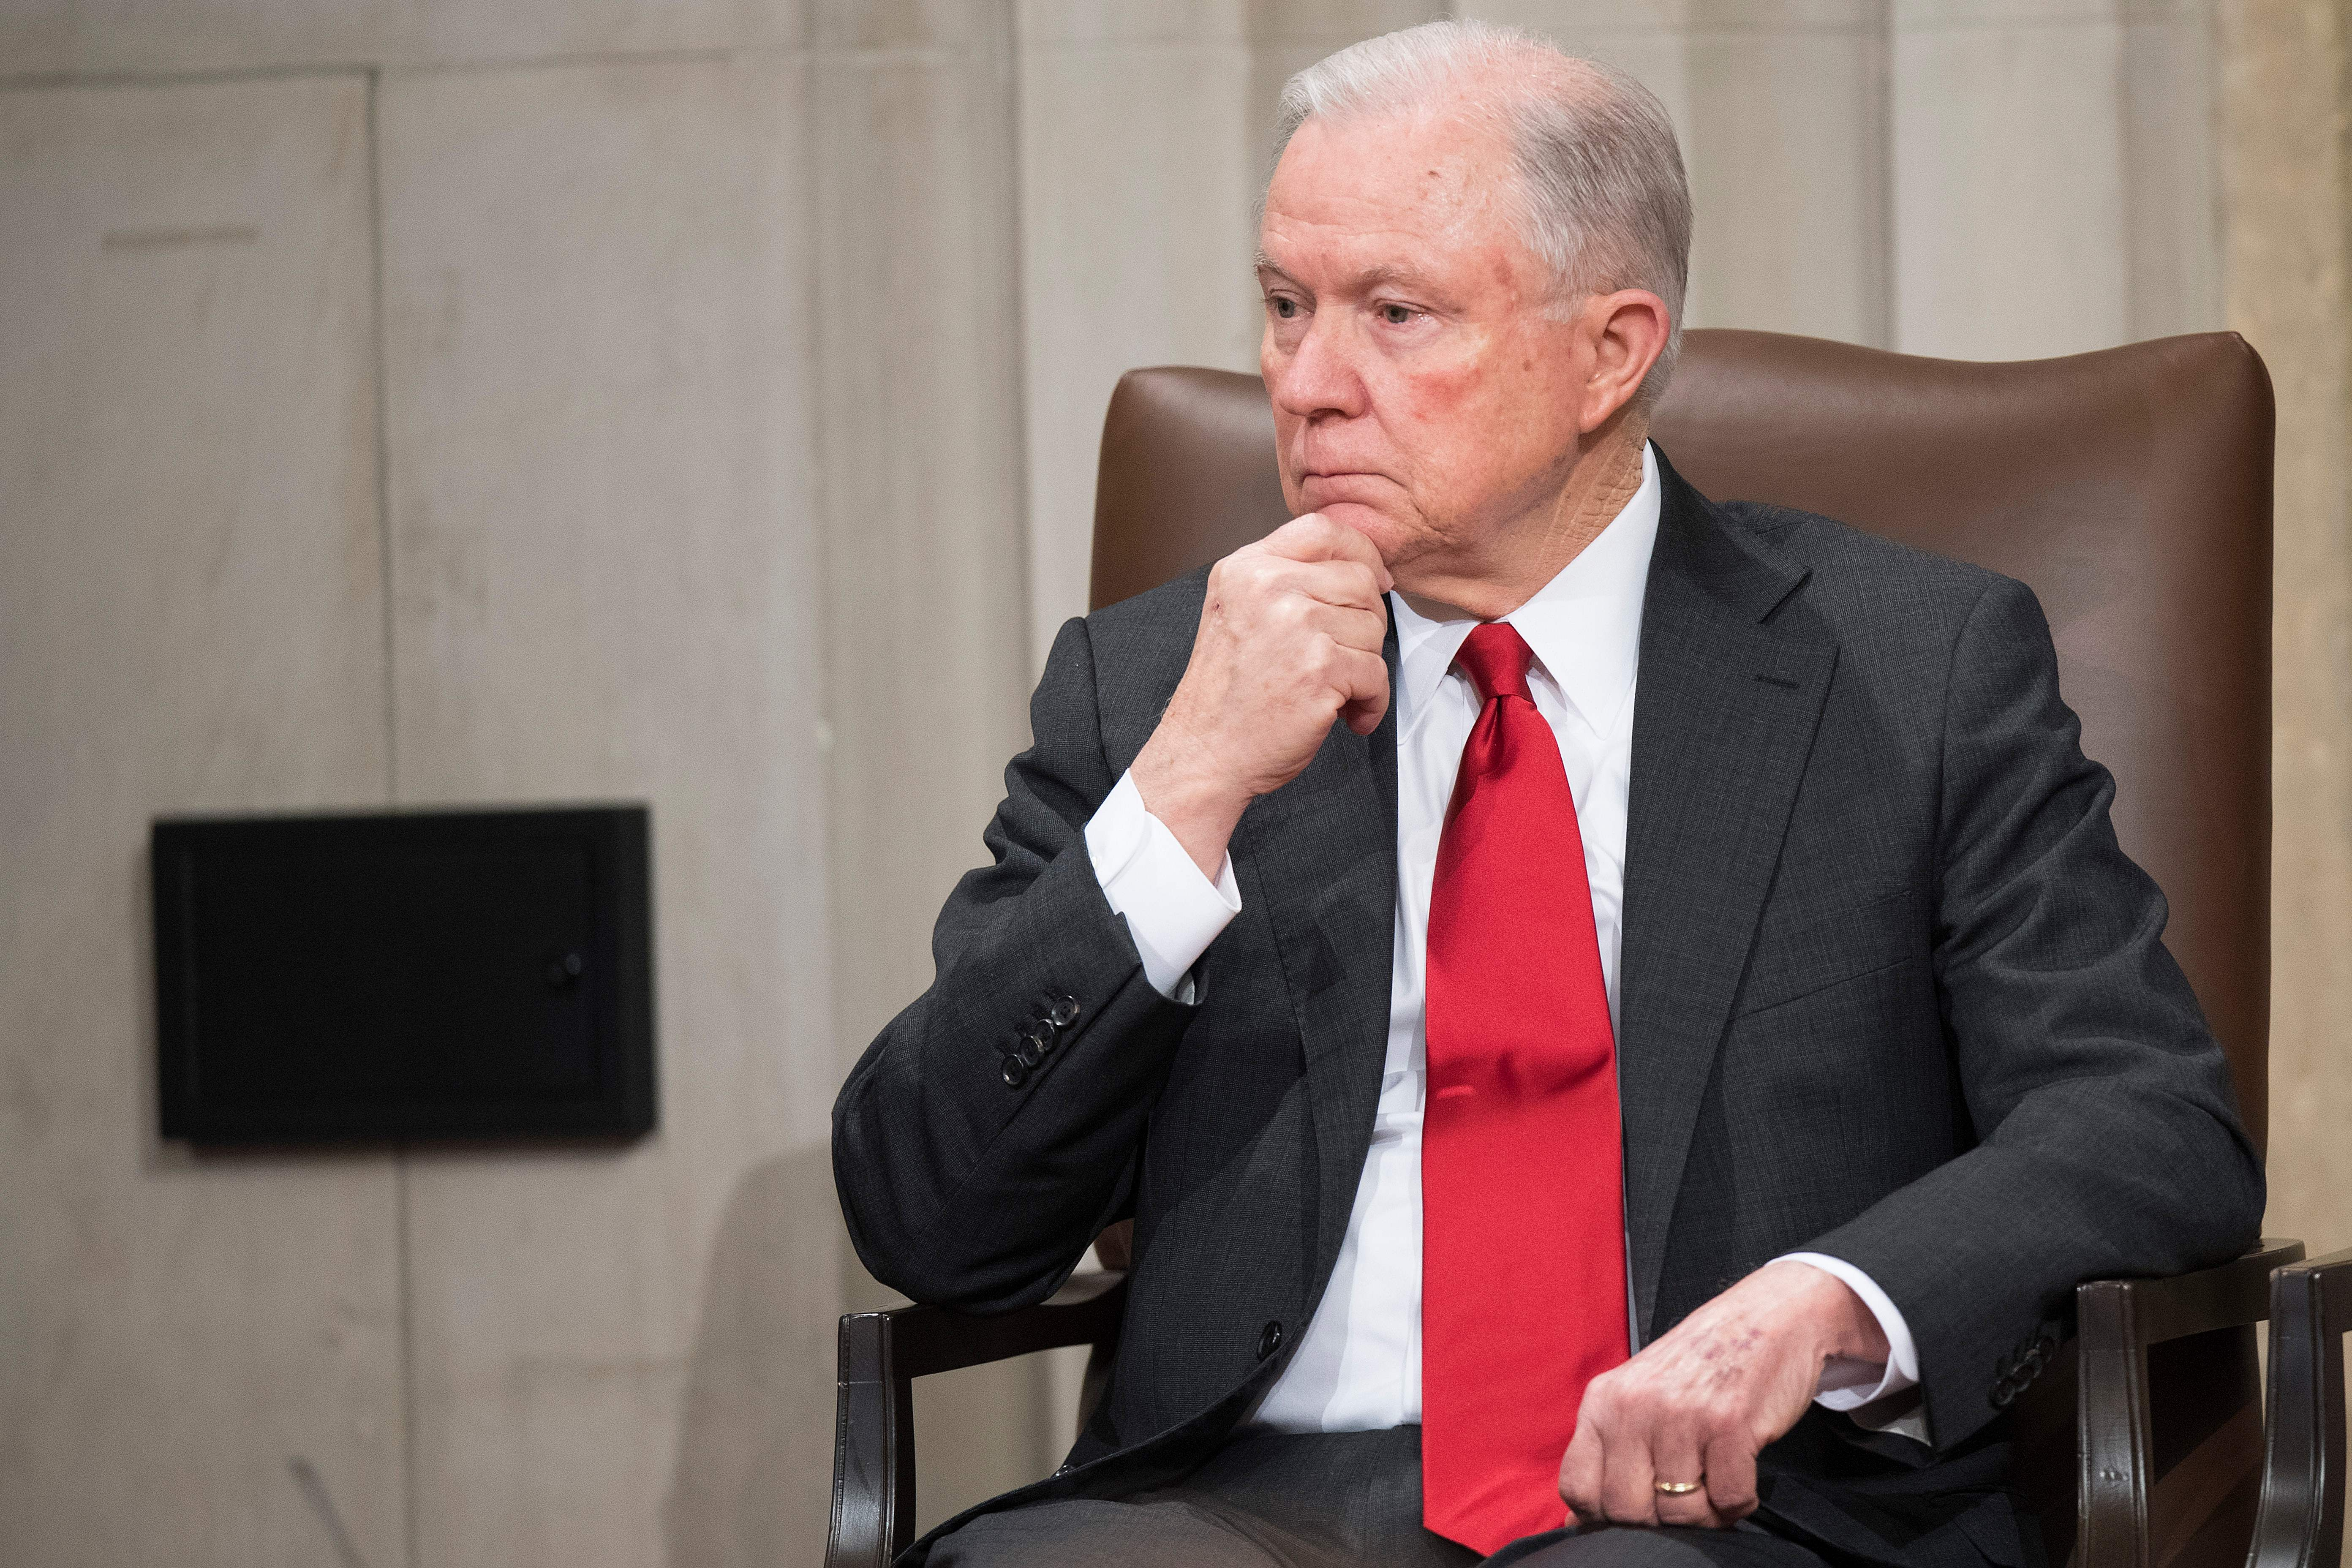 Attorney General Jeff Sessions waits to speak at the US Marshal Service's Director's Honorary Awards ceremony in Washington, DC, on November 1, 2018. (Photo: JIM WATSON/AFP via Getty Images)